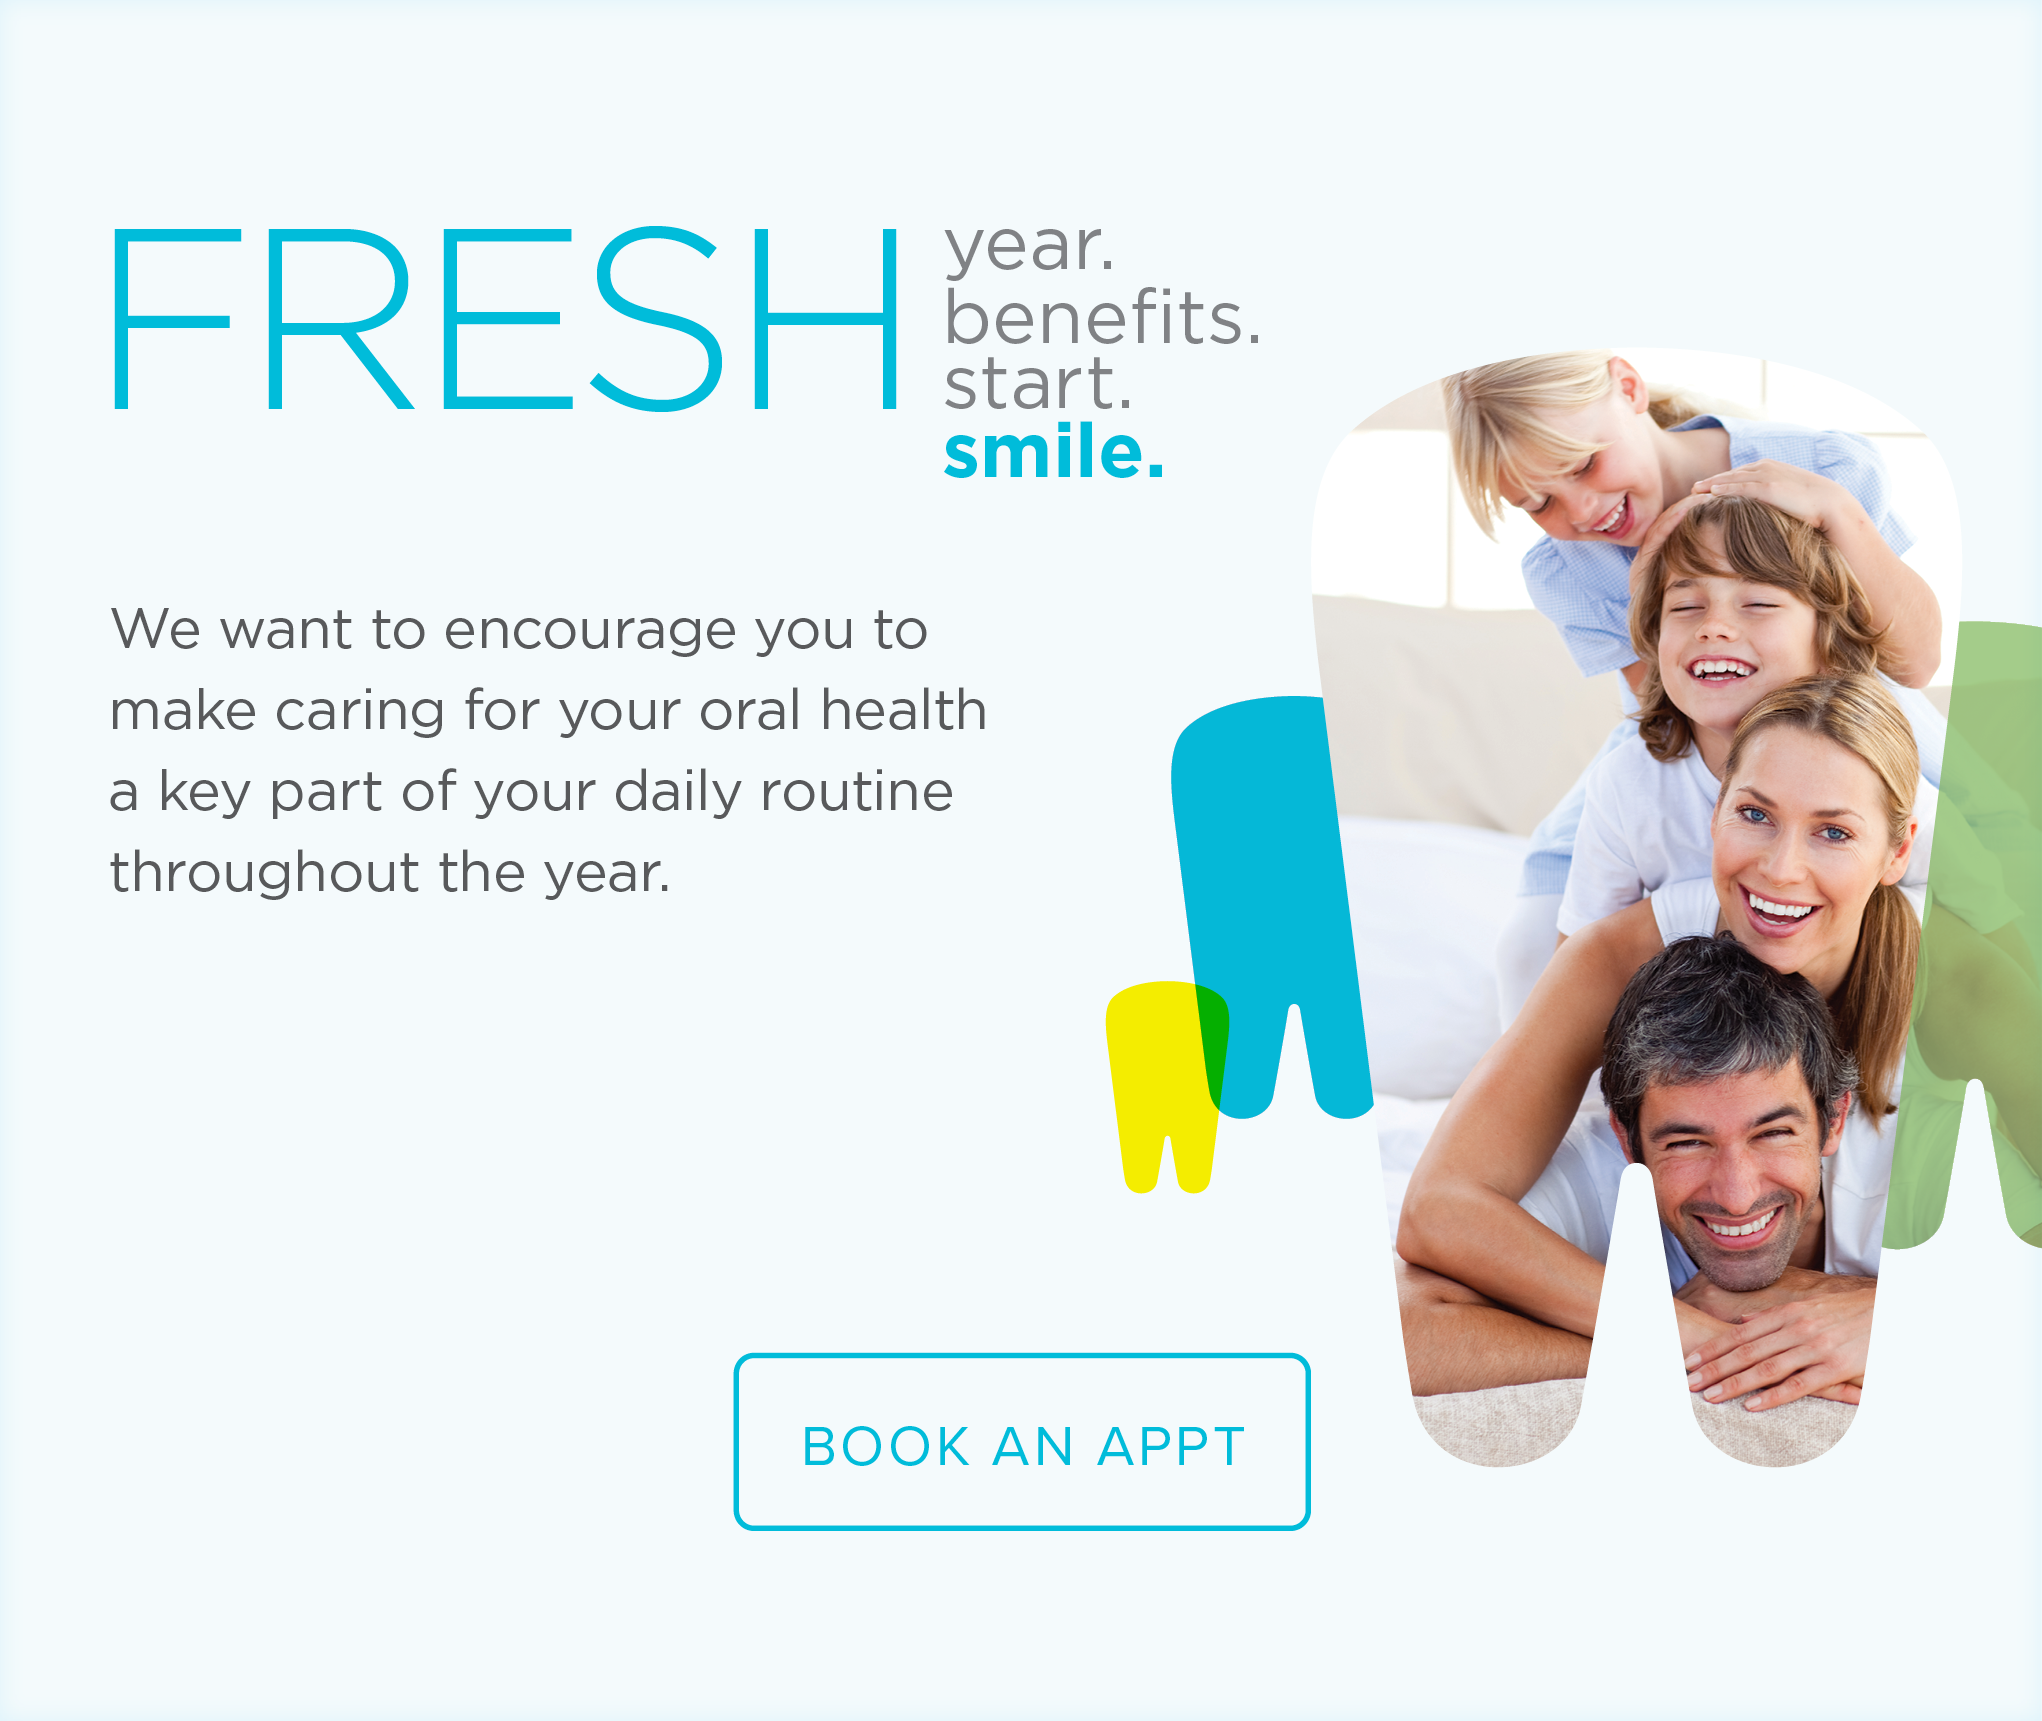 Camino Dental Group - Make the Most of Your Benefits